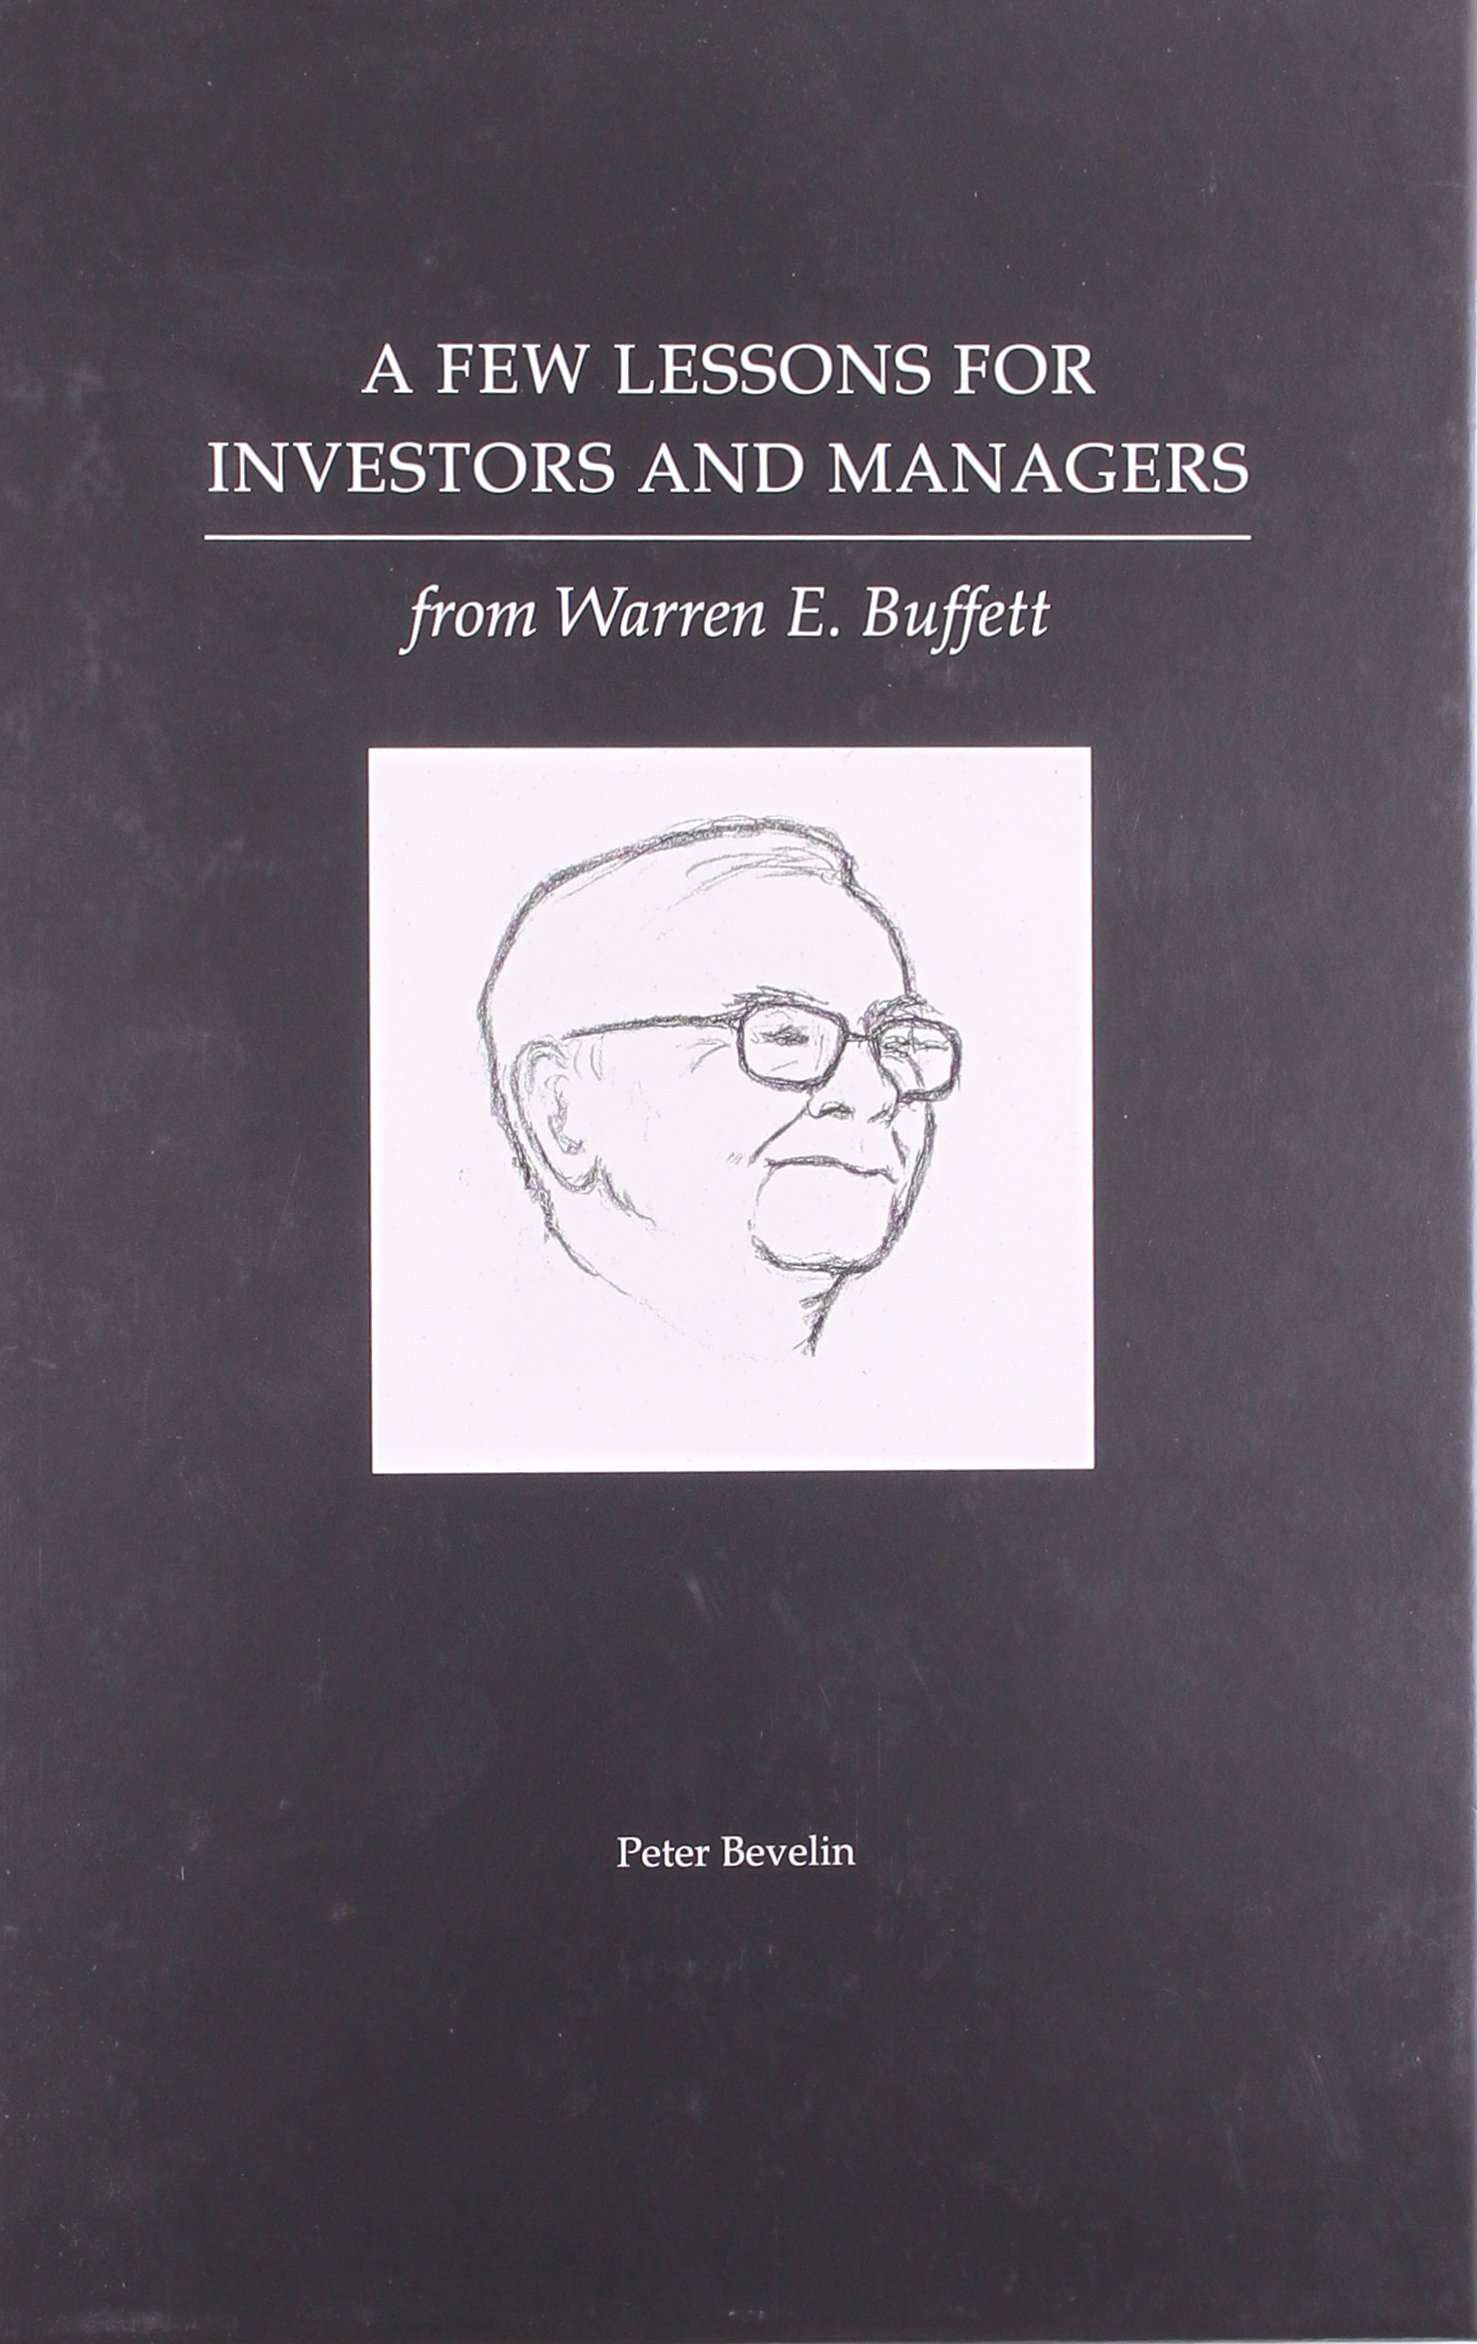 A Few Lessons For Investors and Managers